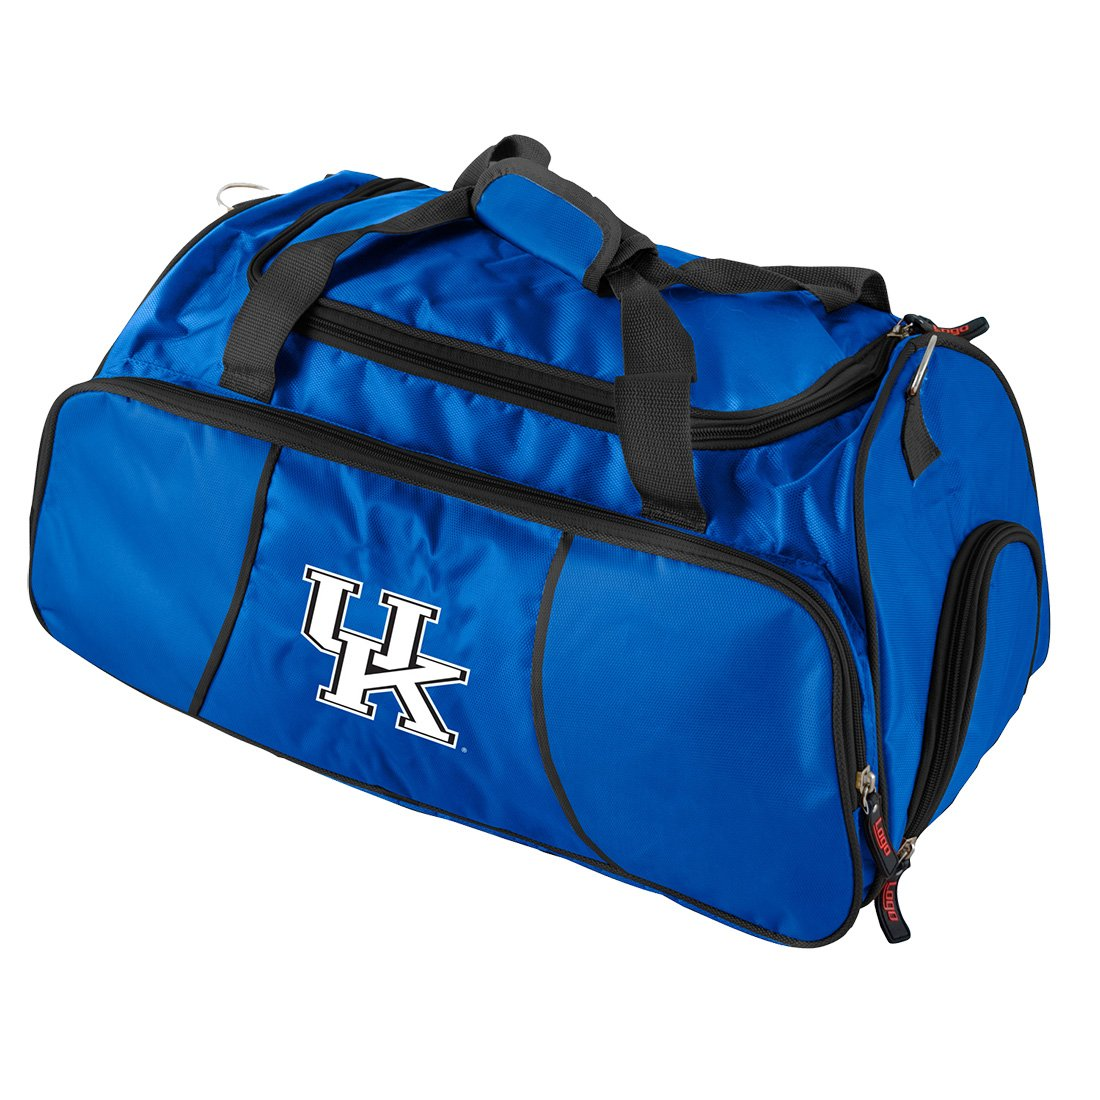 25100c80d9e8 Amazon.com   Penn State Nittany LionsGym Bag   Sports Fan Bags   Sports    Outdoors